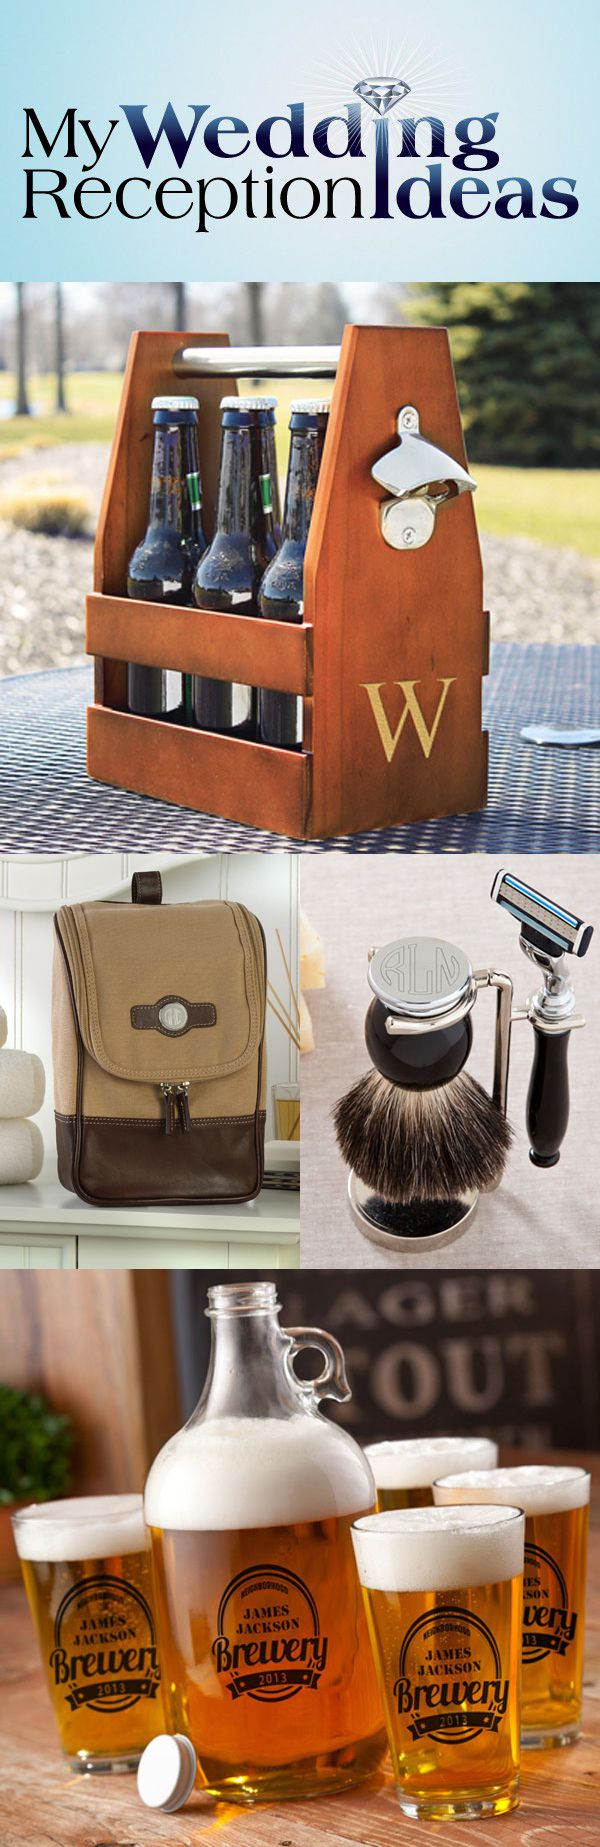 Hot groomsman gift ideas that are both unique and functional are the ticket for saying thanks to your best man and groomsmen. An wood craft beer carrier, complete with bottle opener and large custom initial will be a hit with the craft brewer in your wedding party. How about a badger hair shaving brush and razor set with custom engraved shaving stand? Gifts like these will be admired and enjoyed by your best man and groomsmen for years to come.